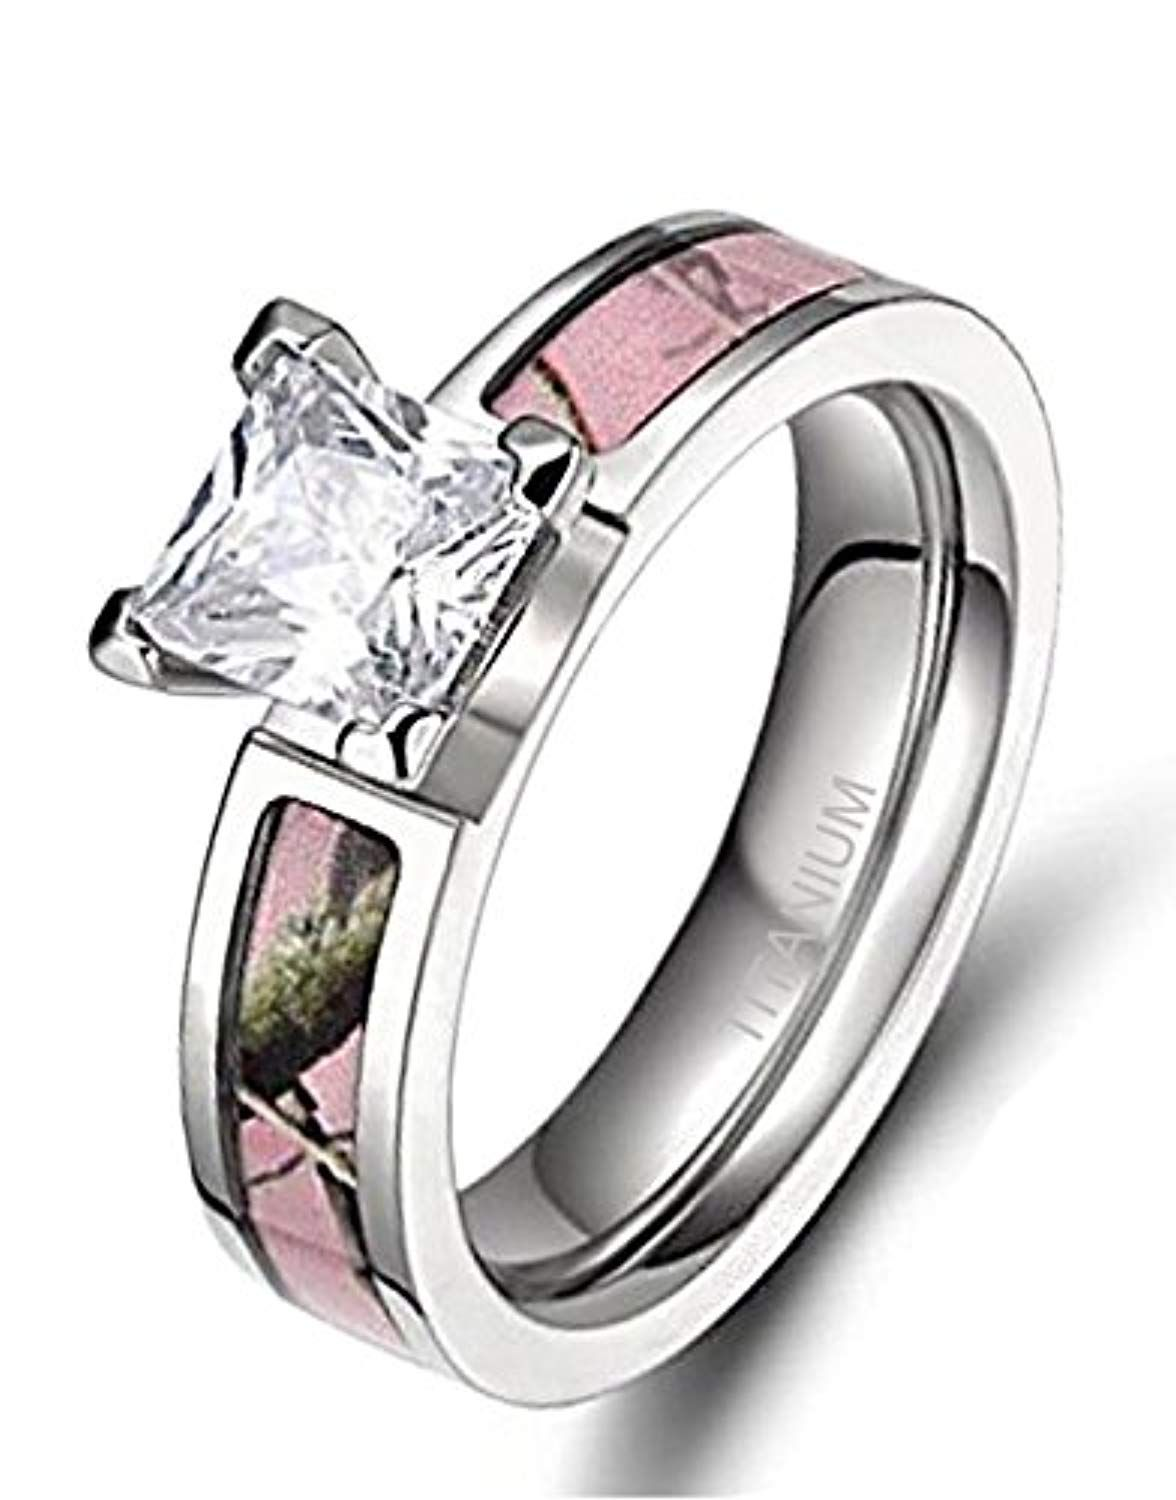 Women's Pink Camo Titanium Engagement Rings with Cubic